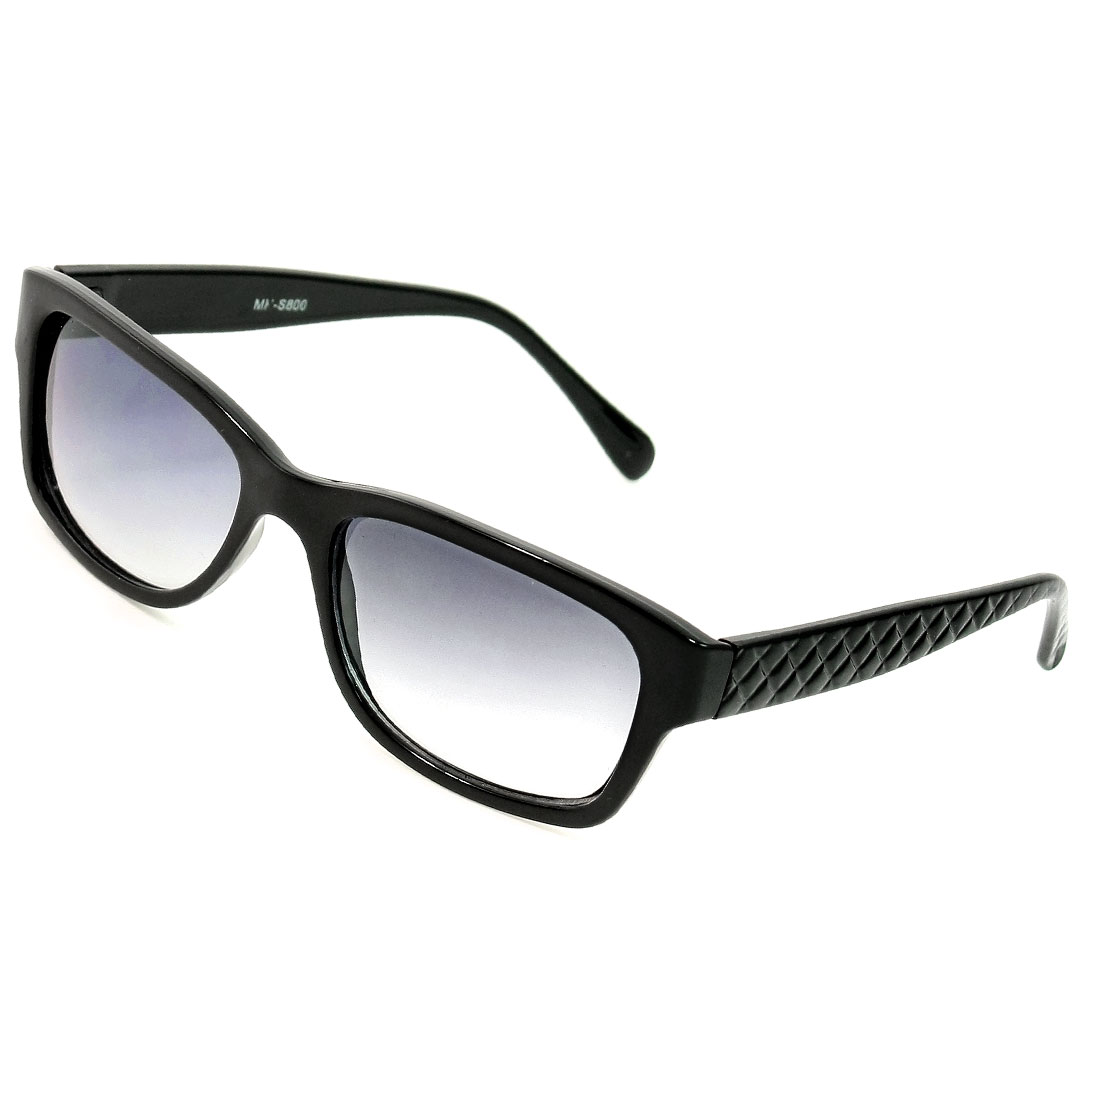 Lady Black Plastic Single Bridge Protection Sunglasses Eyewear